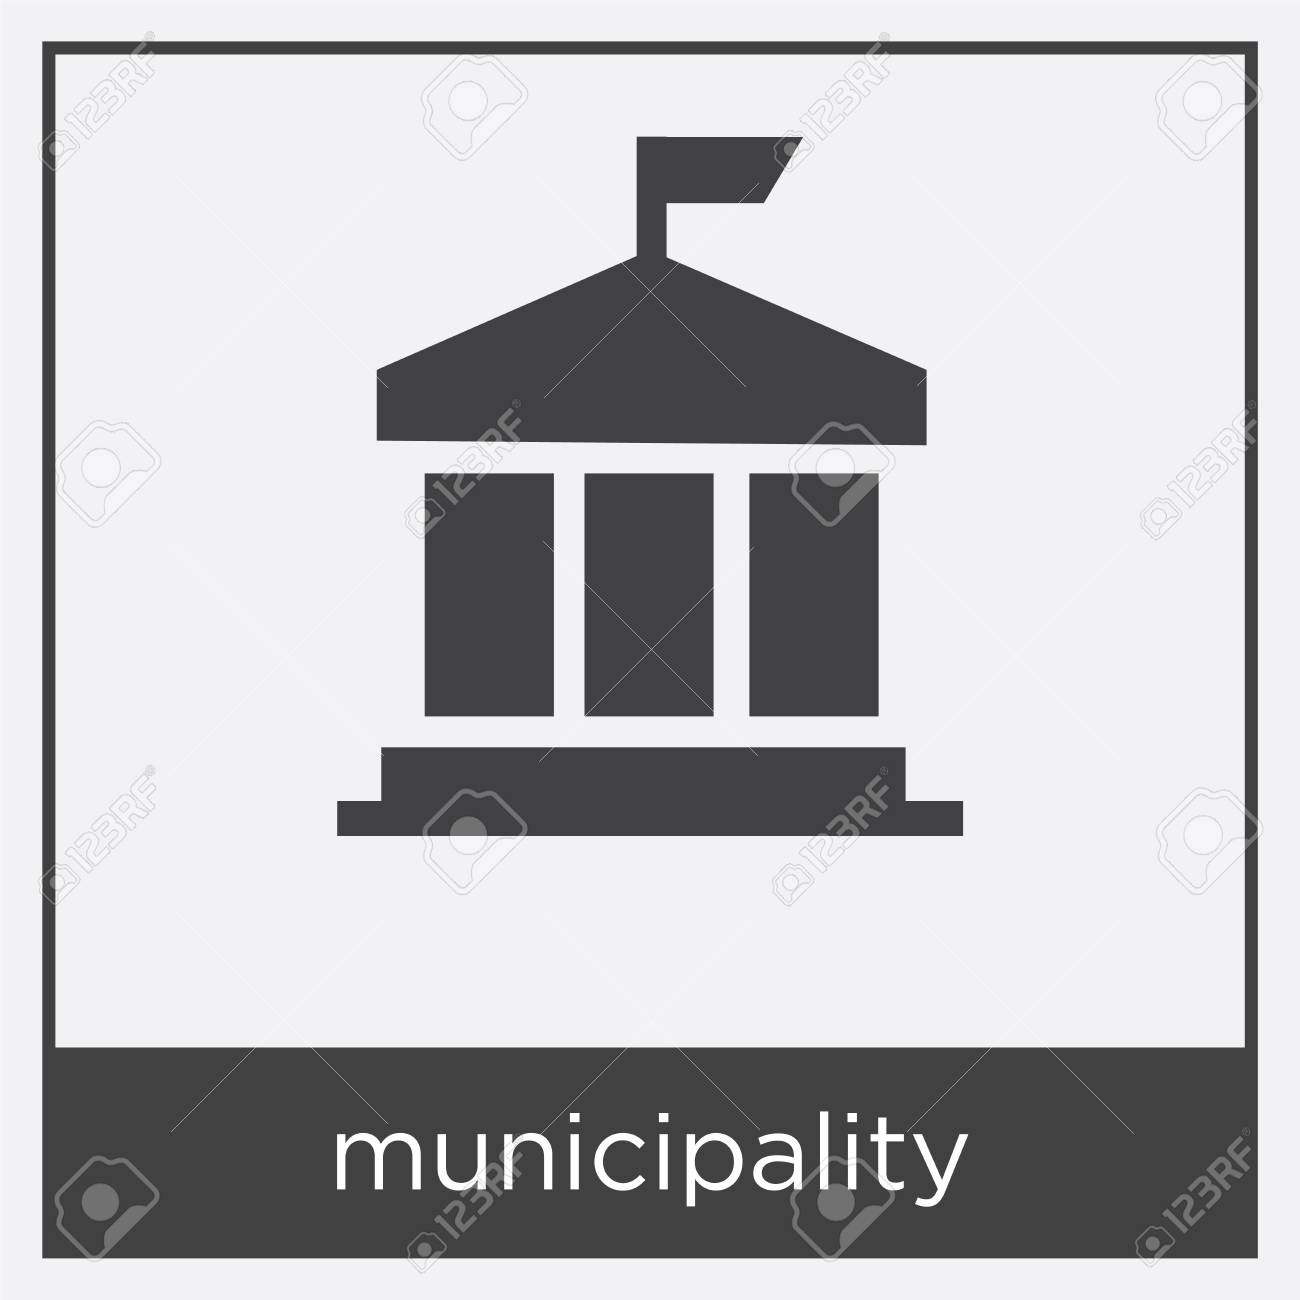 municipality icon isolated on white background with black border stock vector 100336104